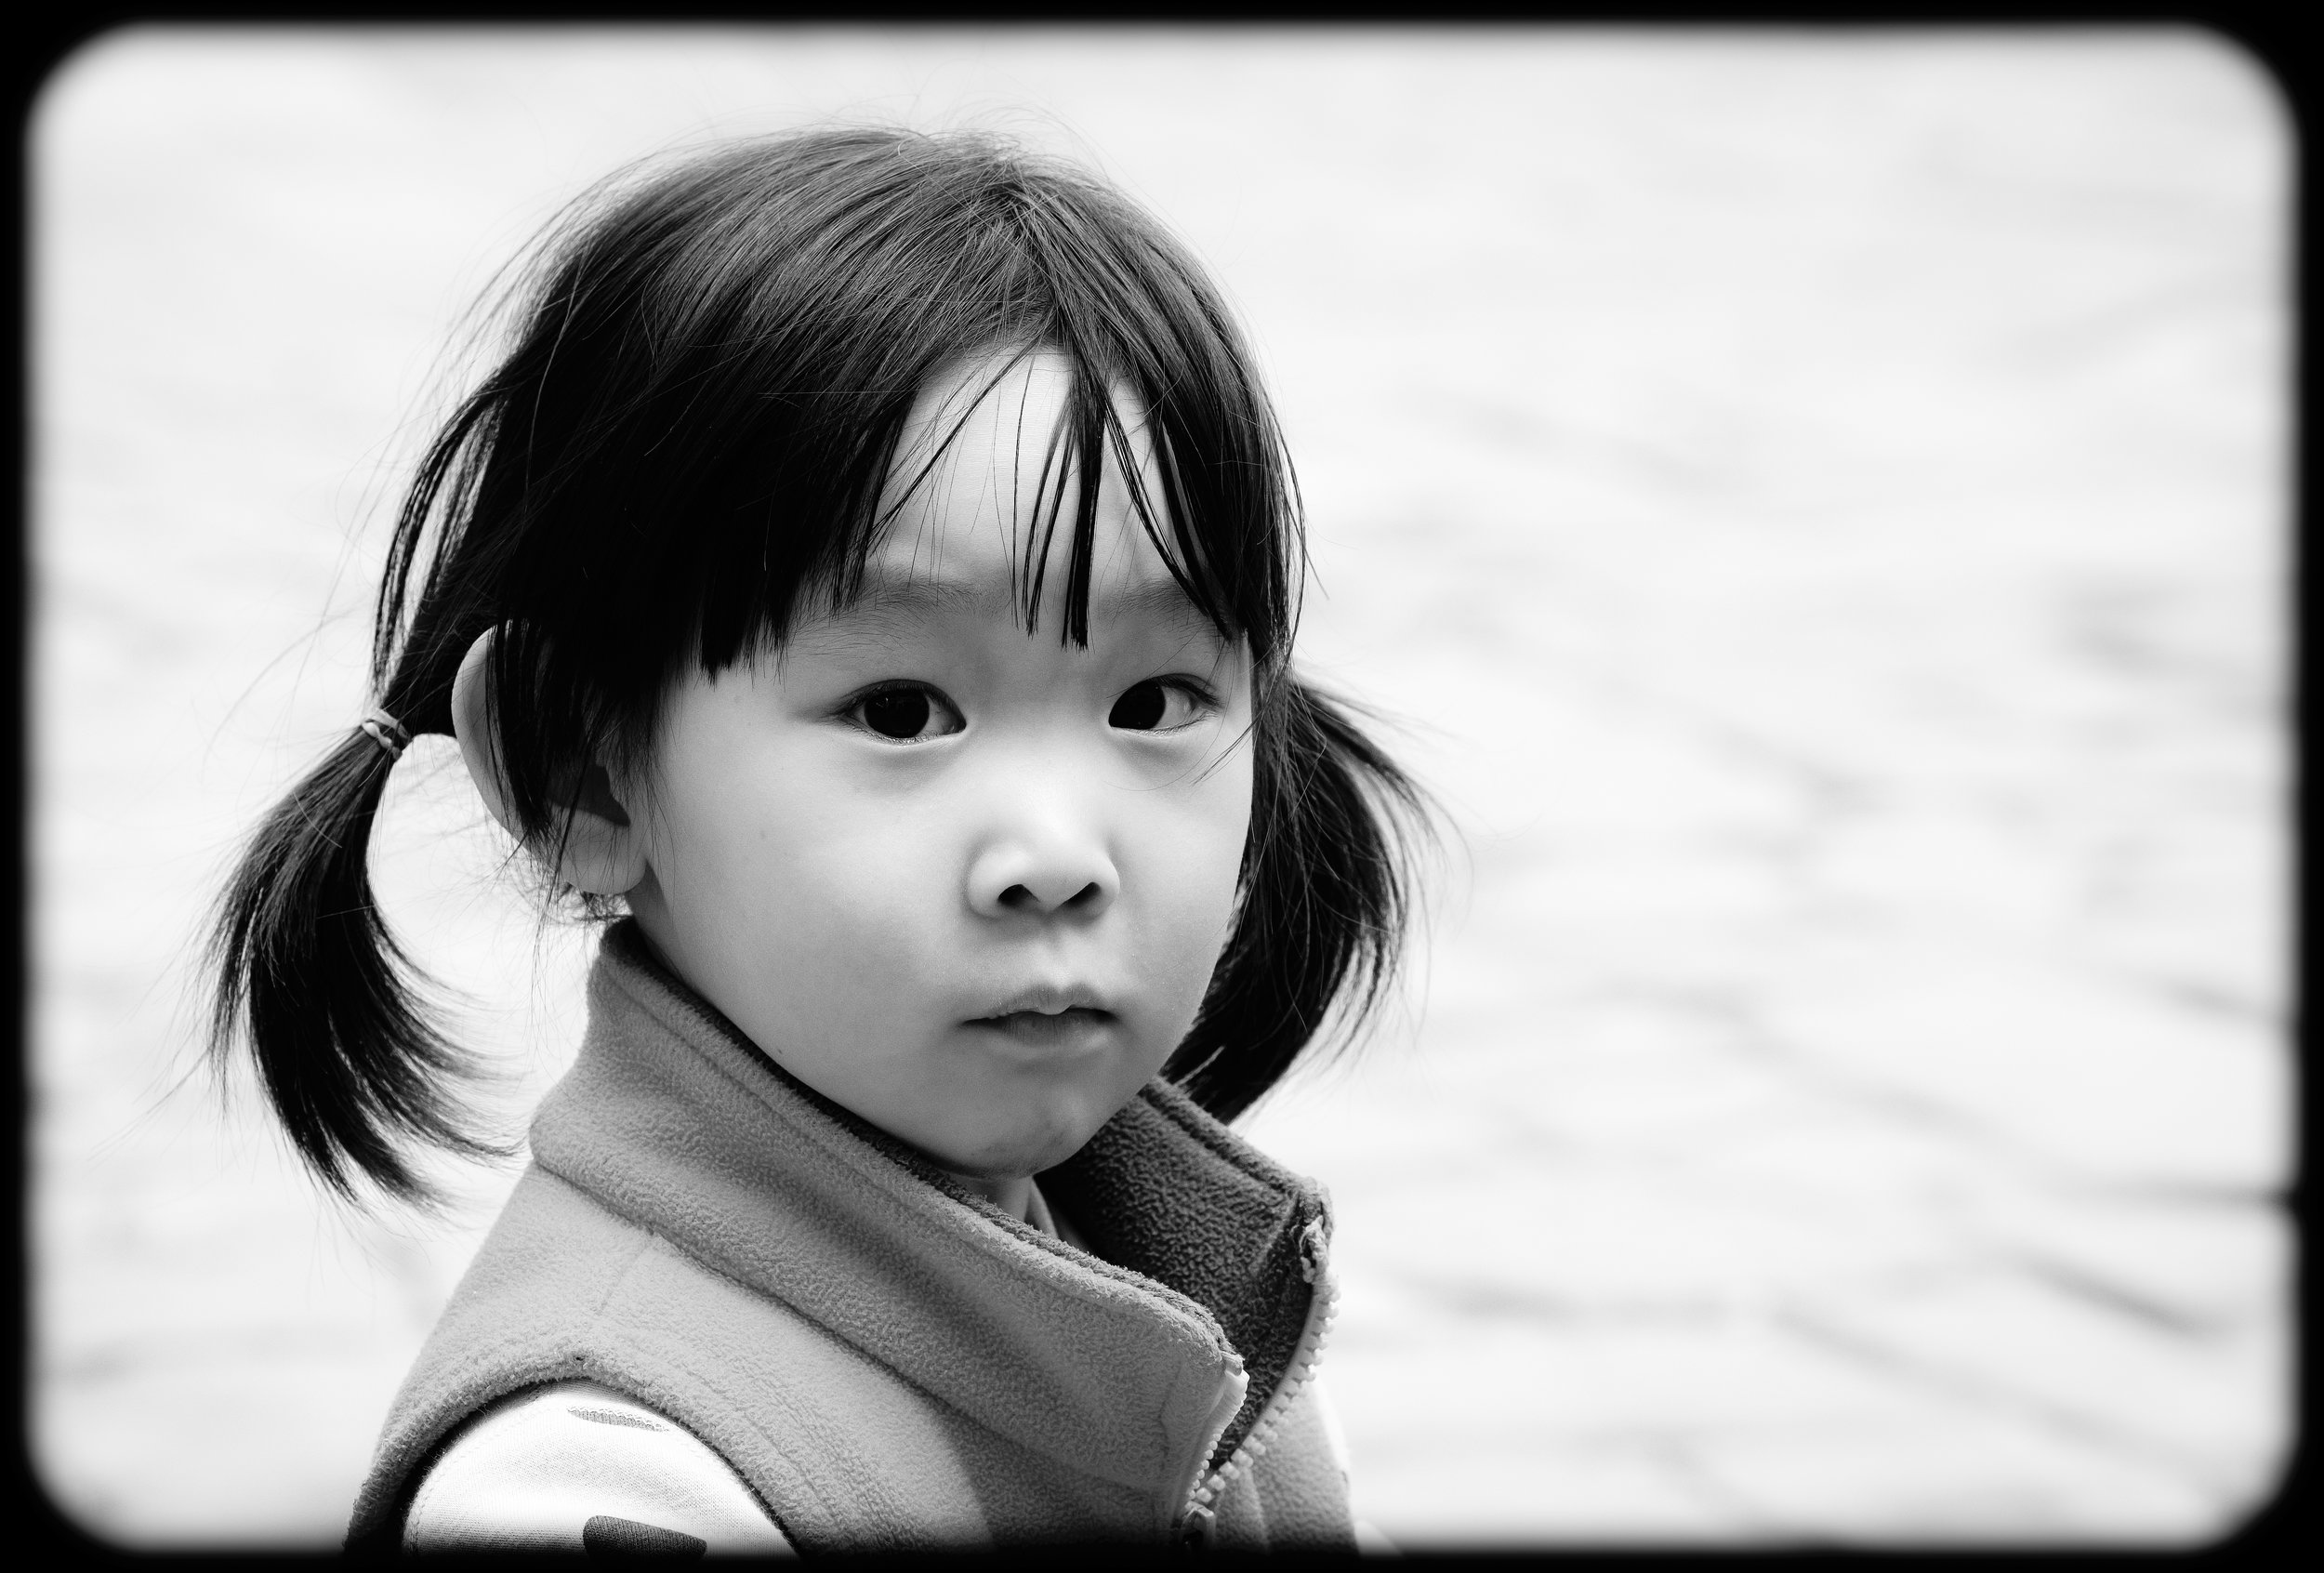 shaxi little girl with pigtales.jpg